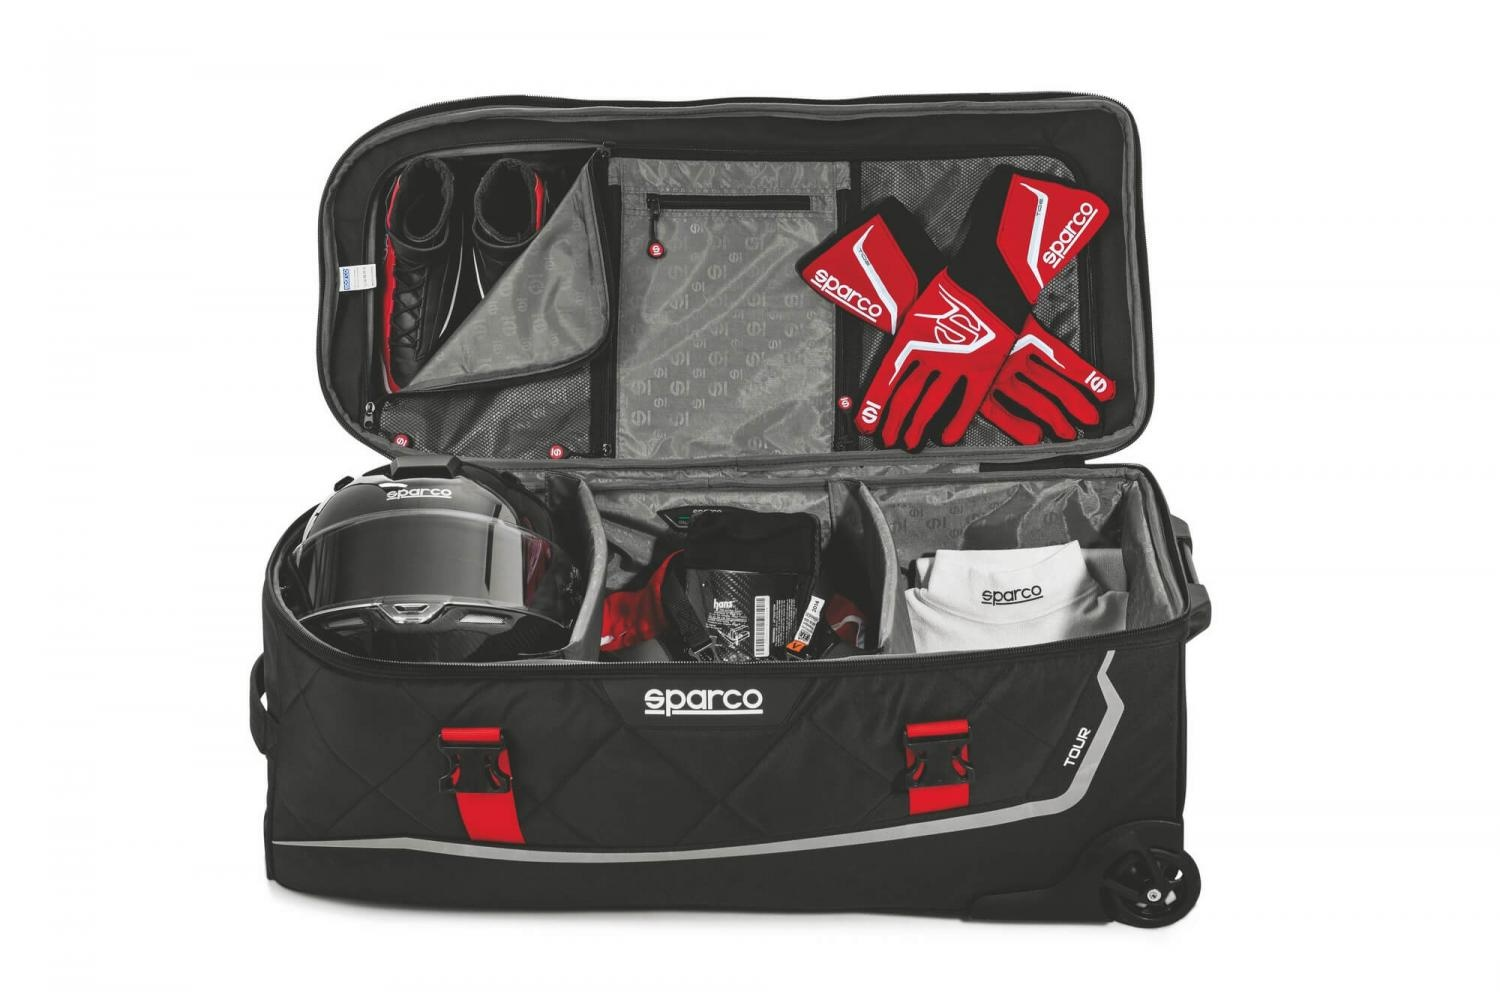 Sparco Tour Tasche Martini Racing